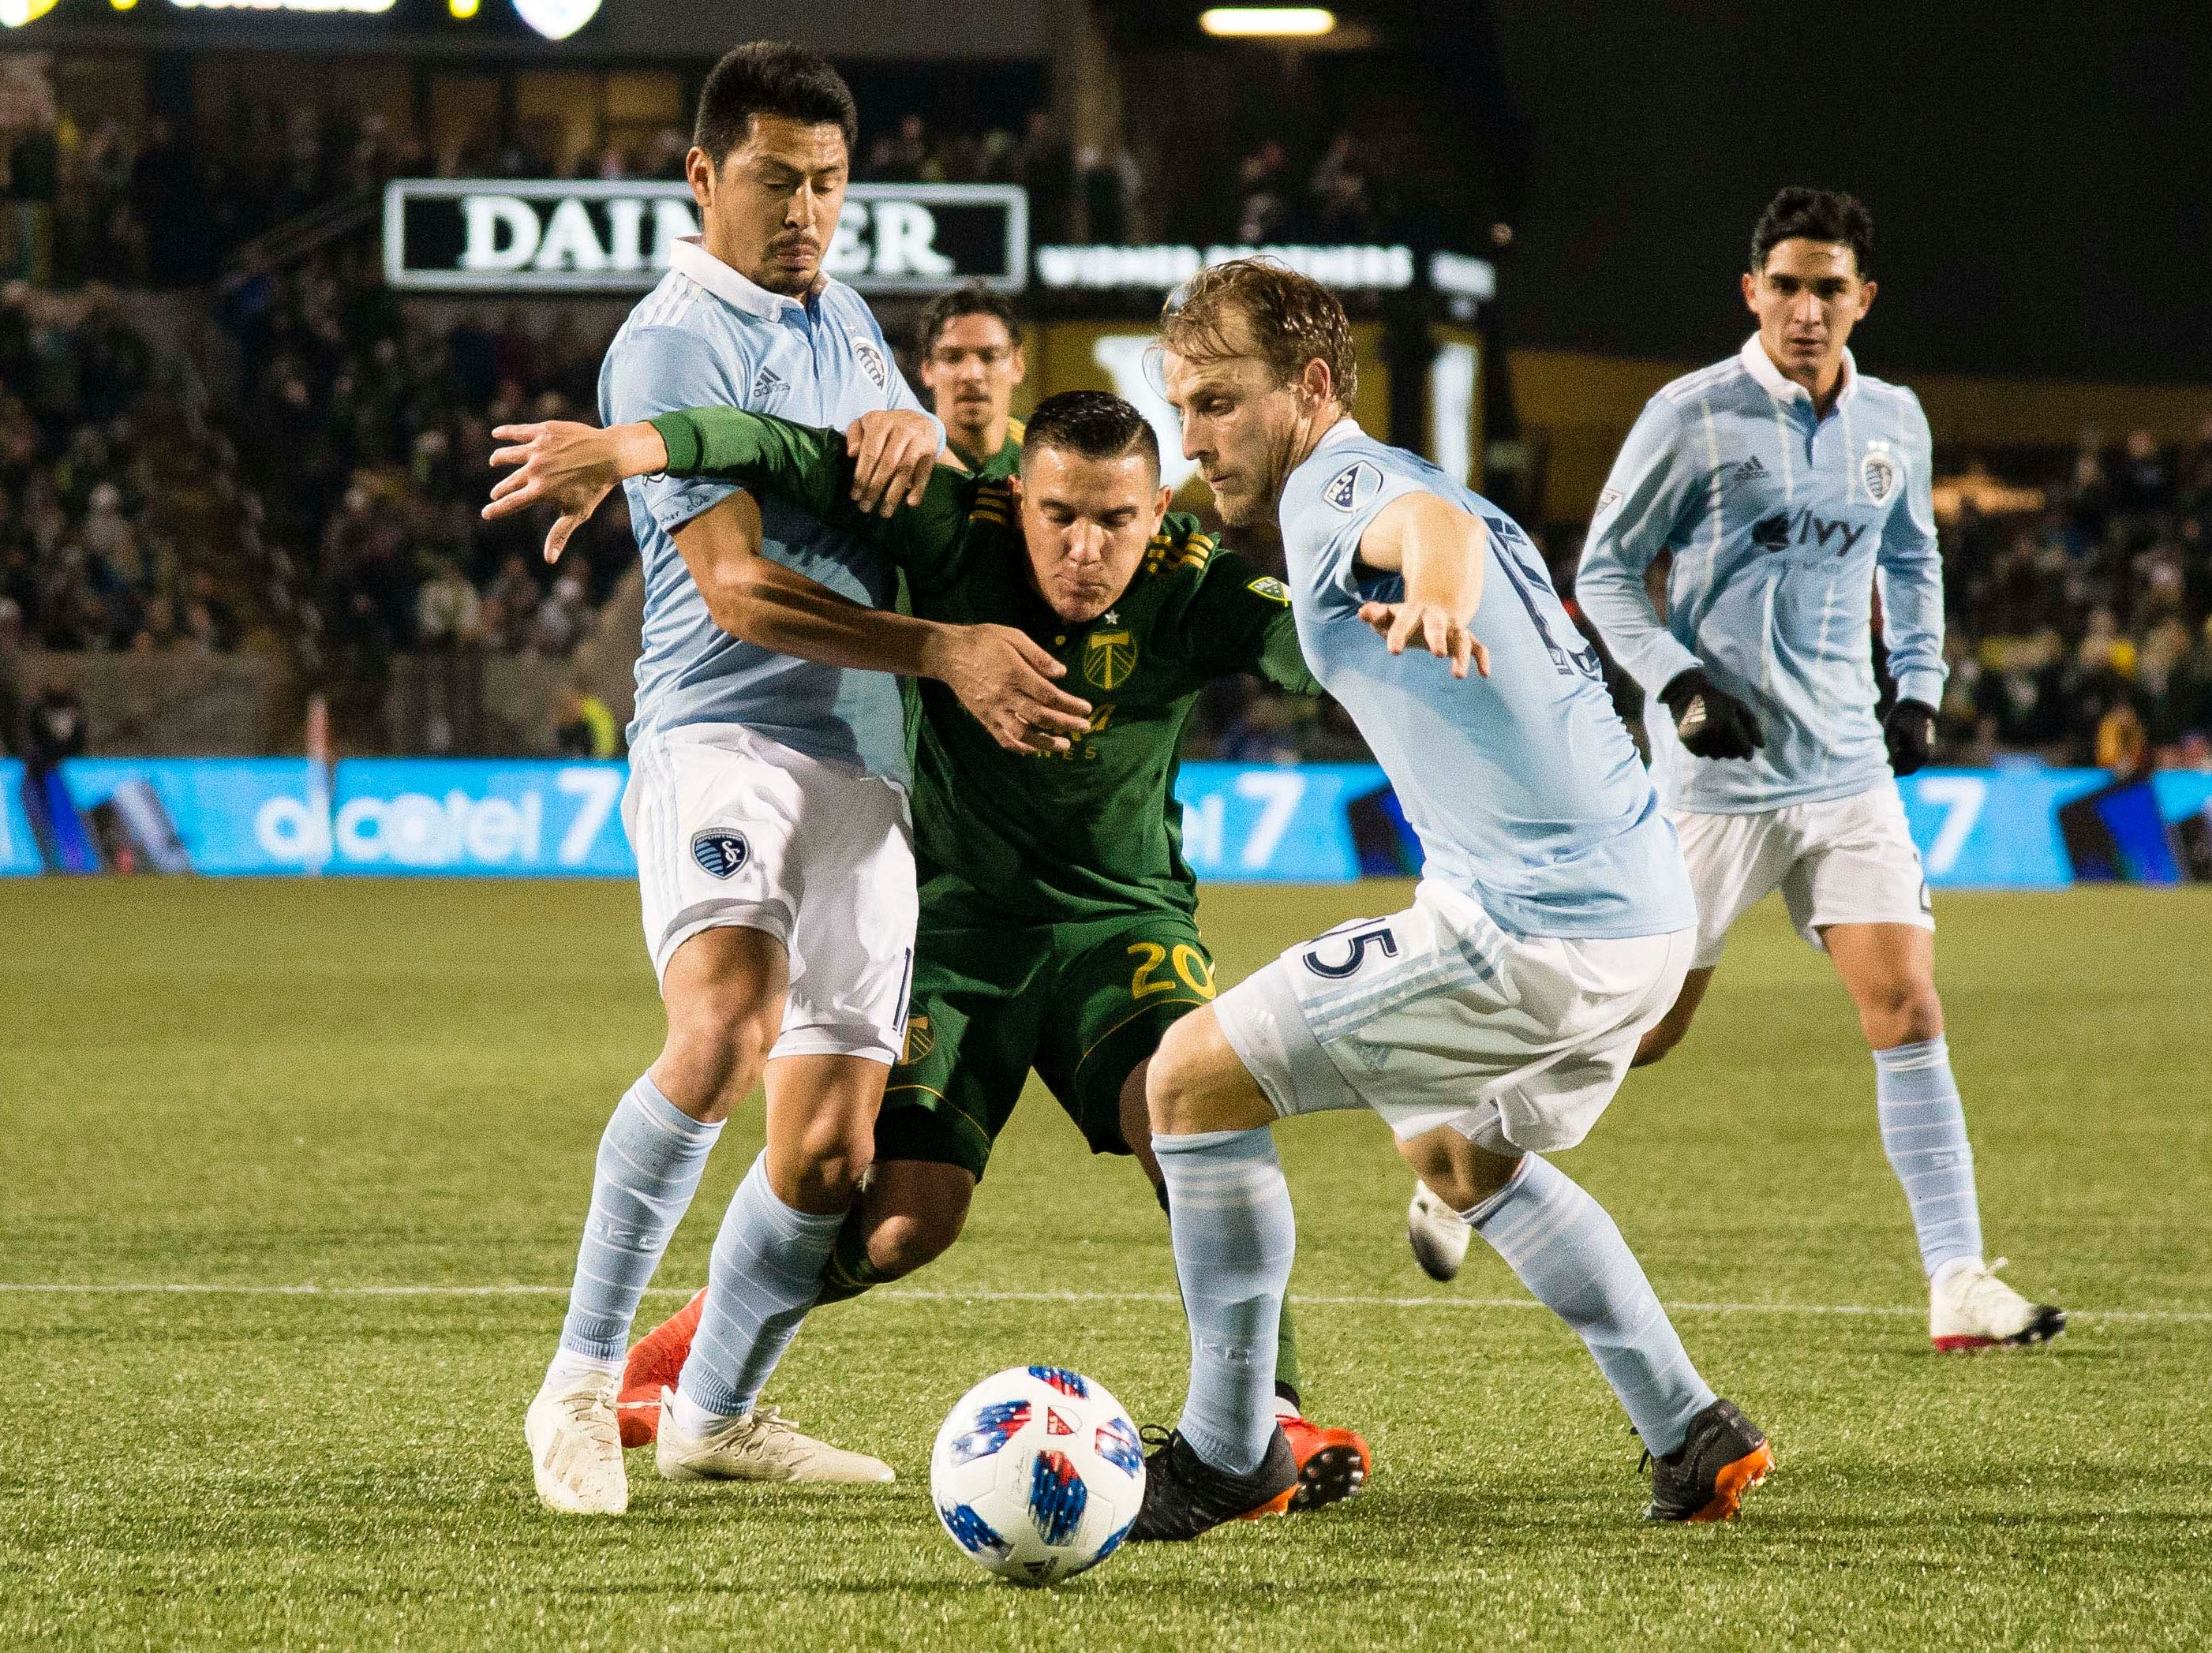 Sporting Kansas City midfielder Roger Espinoza (17) and defender Seth Sinovic (15) stop Portland Timbers midfielder David Guzman (20) during the first half in the first leg of the MLS Western Conference Championship at Providence Park.